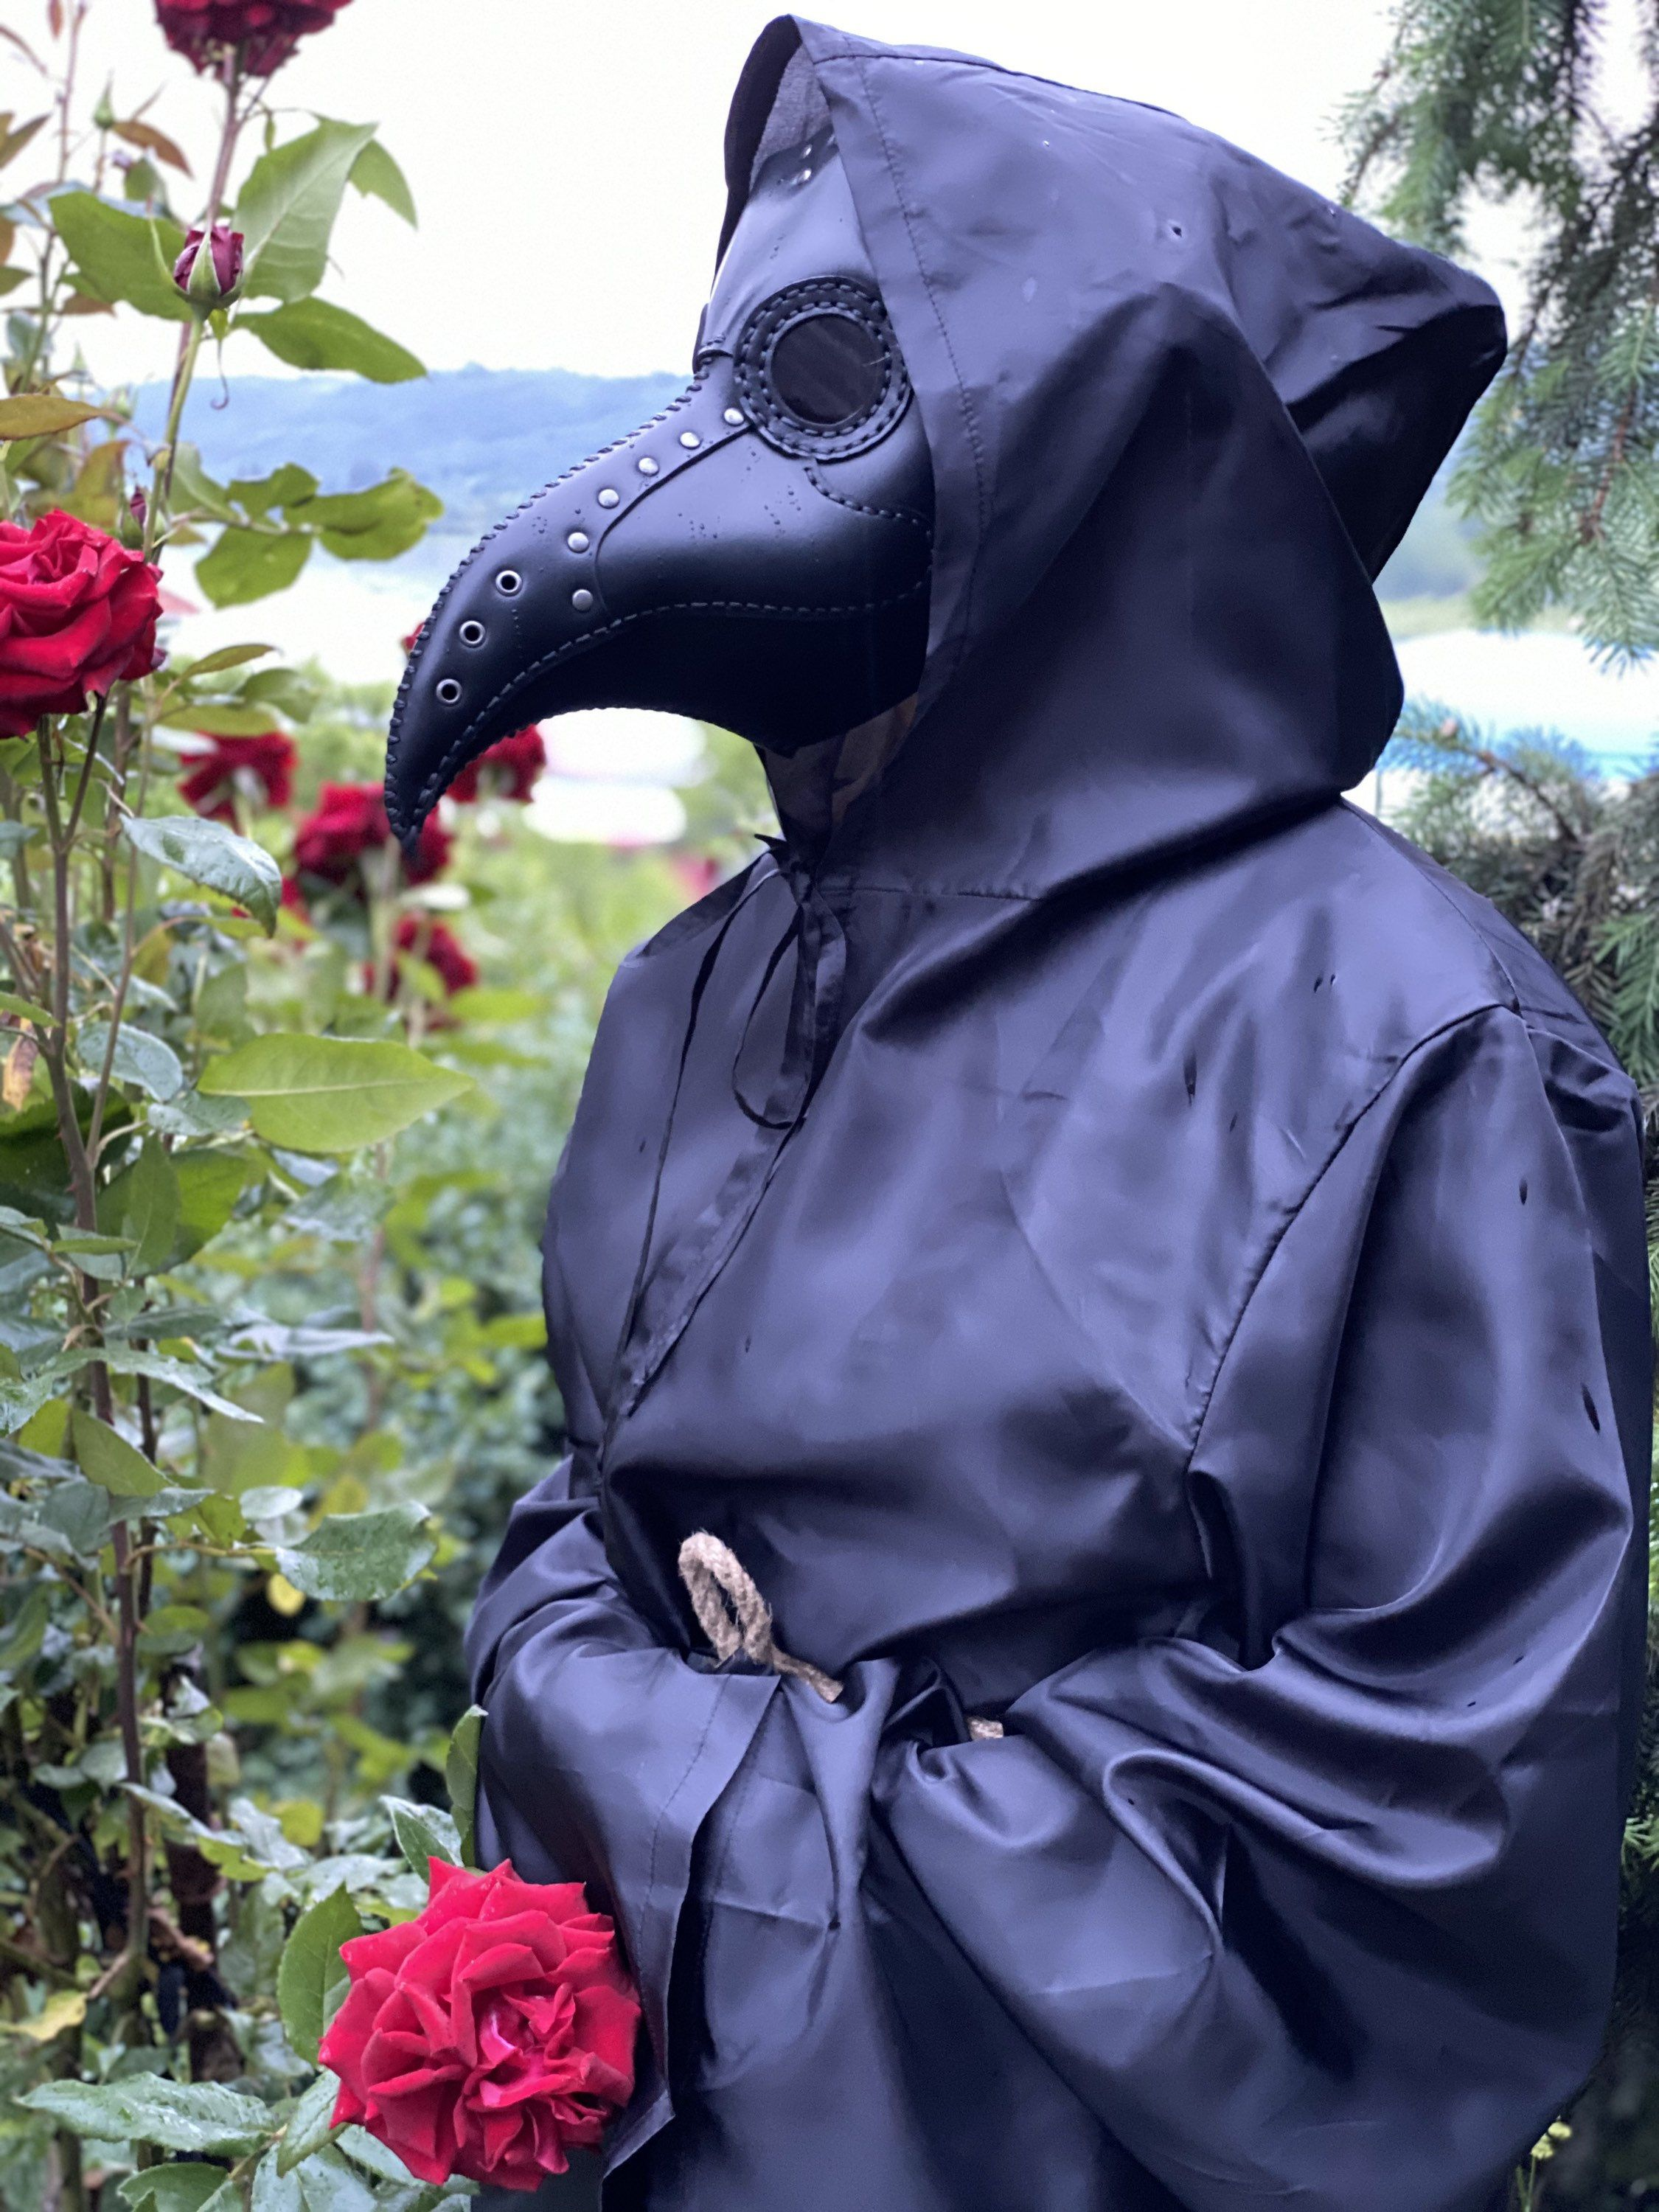 Plague Doctor Mask Plague Dr Mask in Black Leather Doctor ...